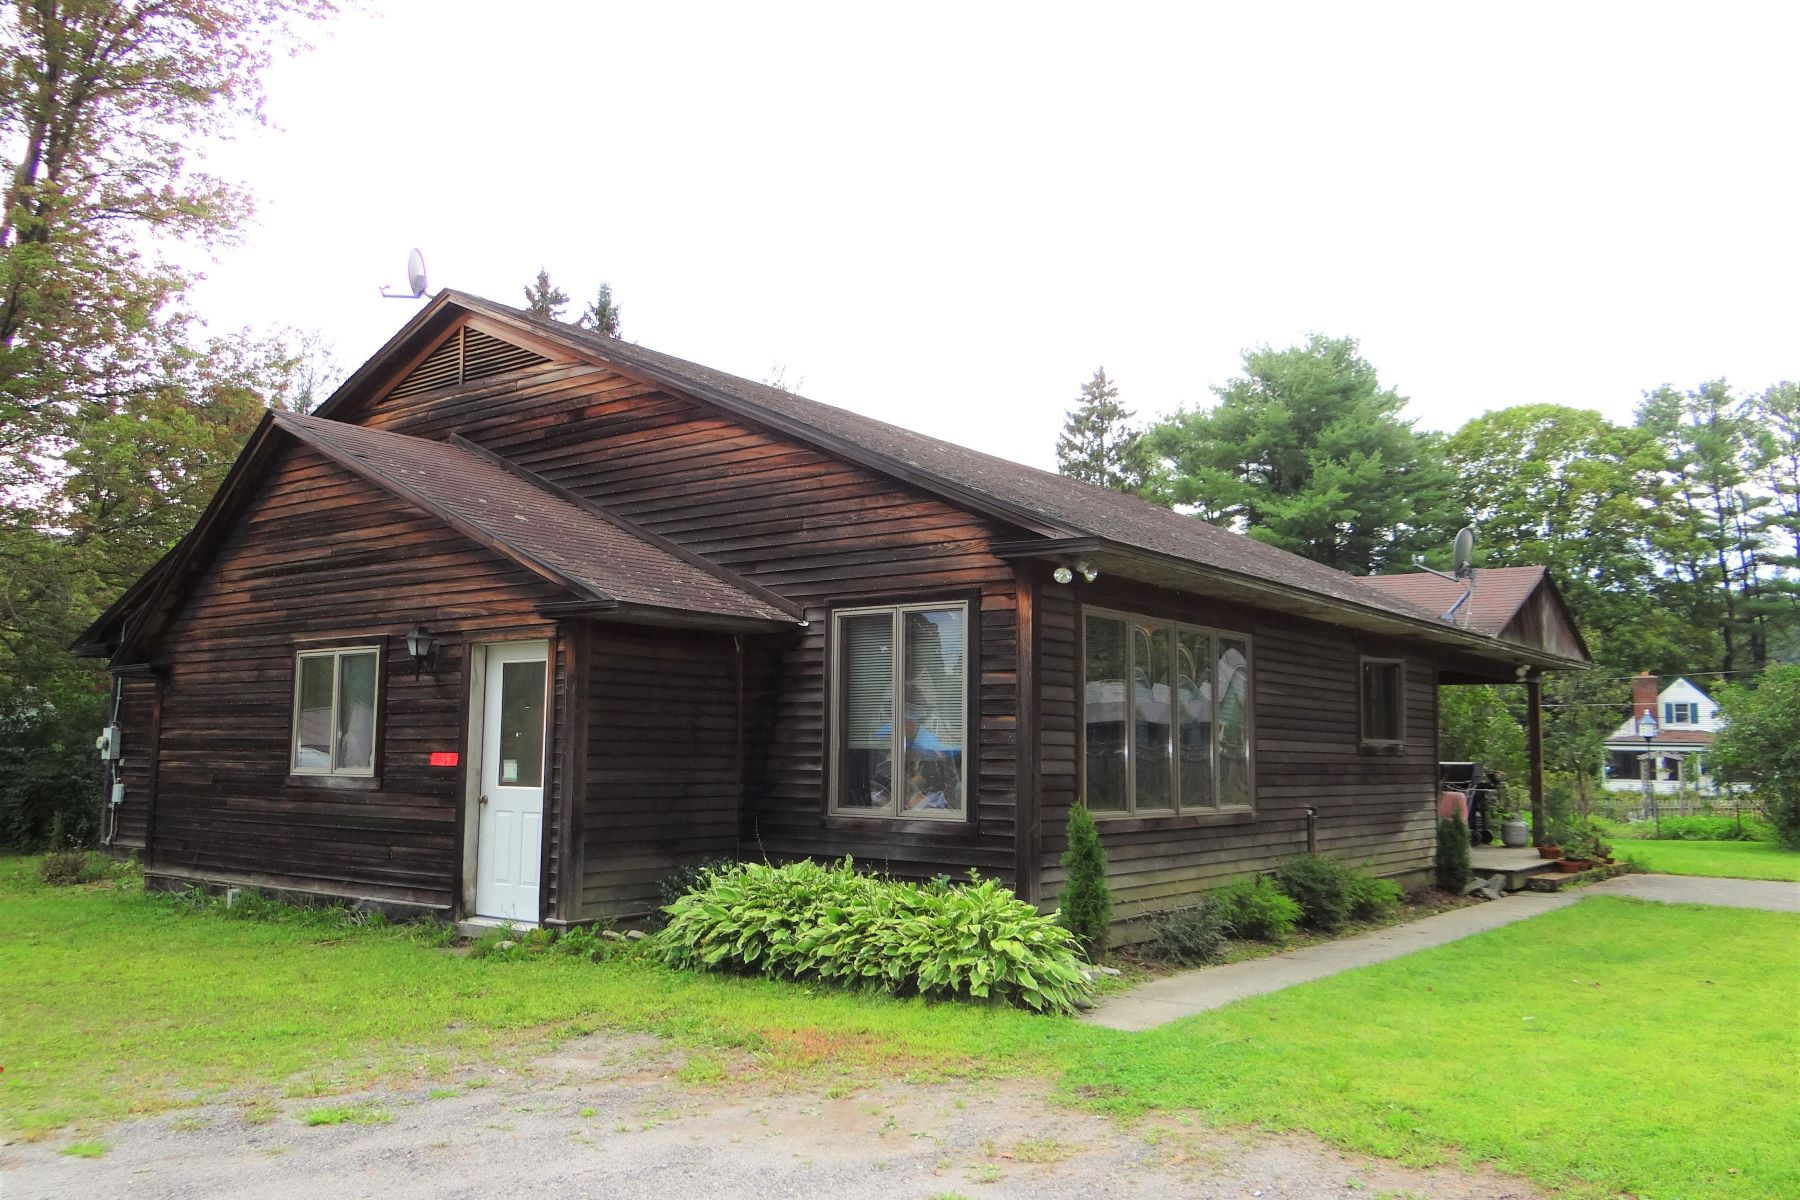 Single Family Homes for Sale at 39 Cliff Street, Royalton 39 Cliff St Royalton, Vermont 05068 United States